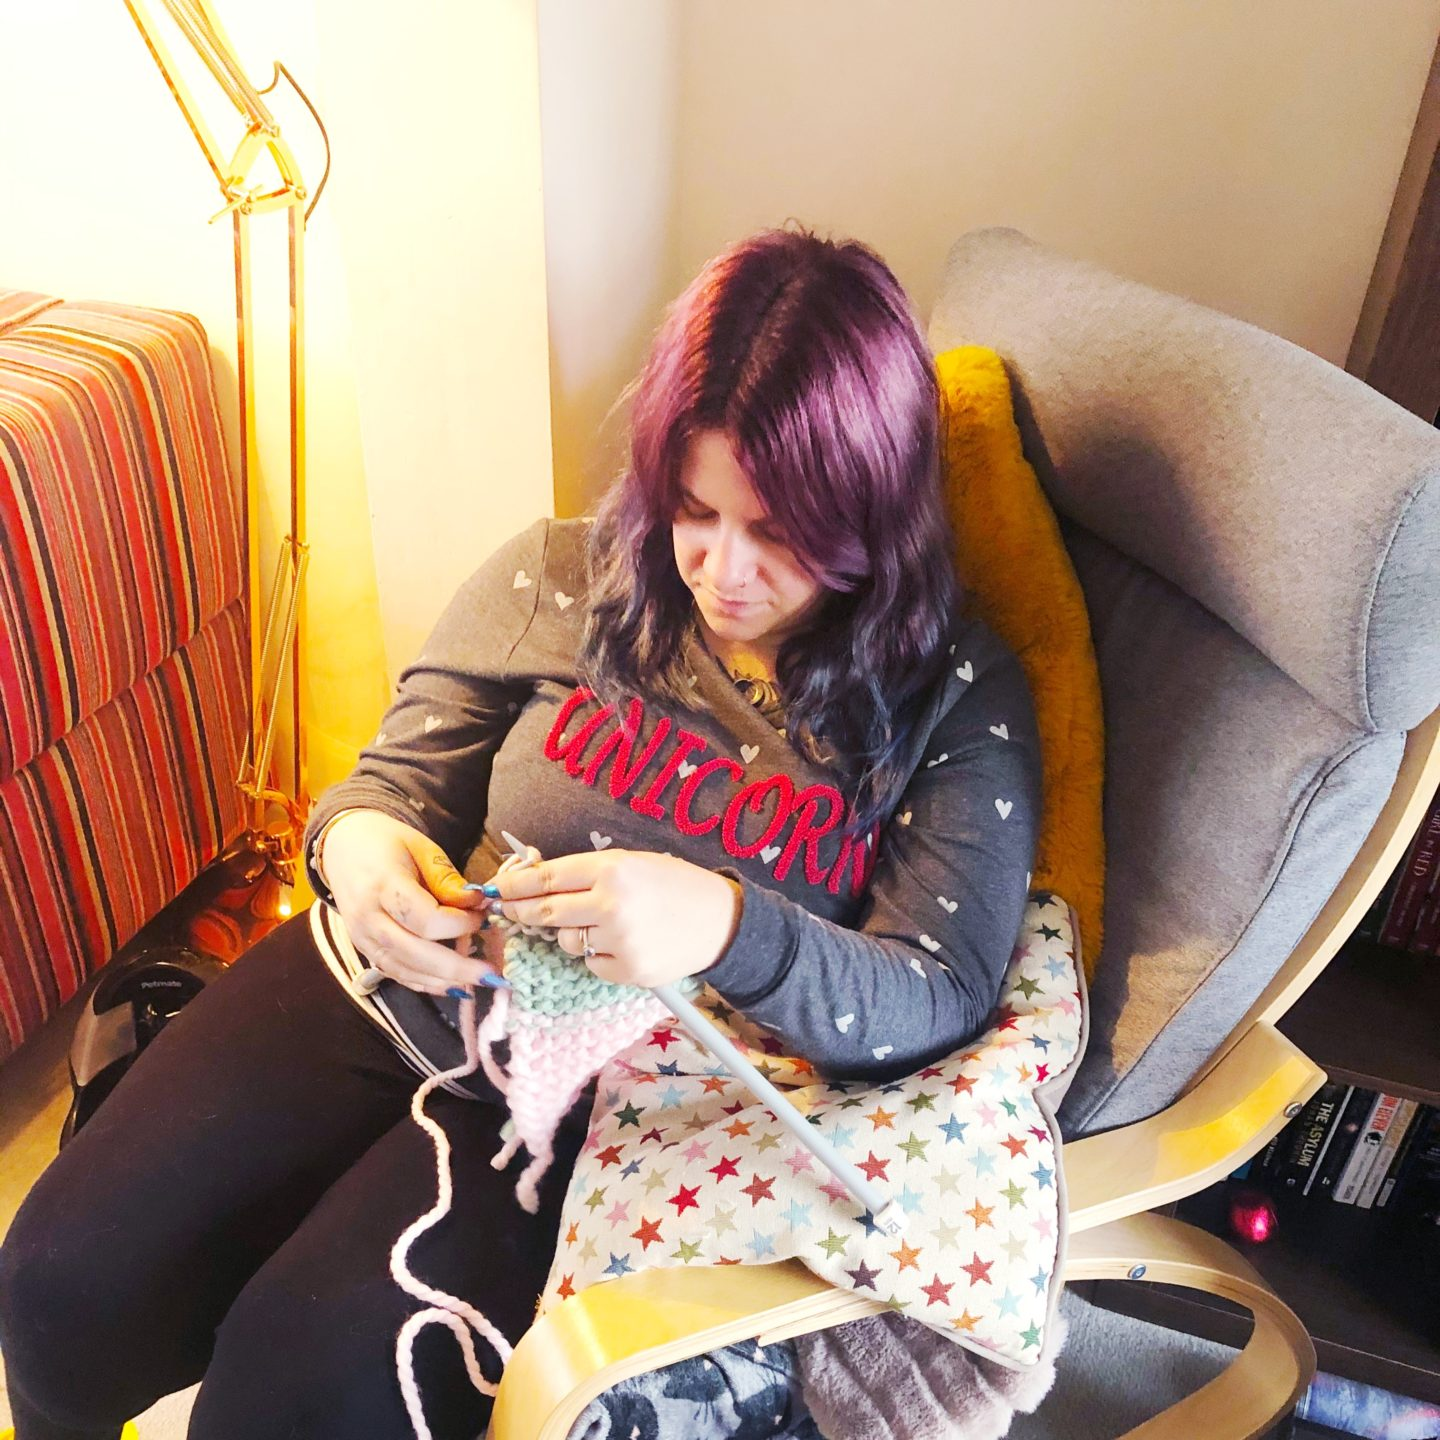 Estelle sat in a rocking chair knitting